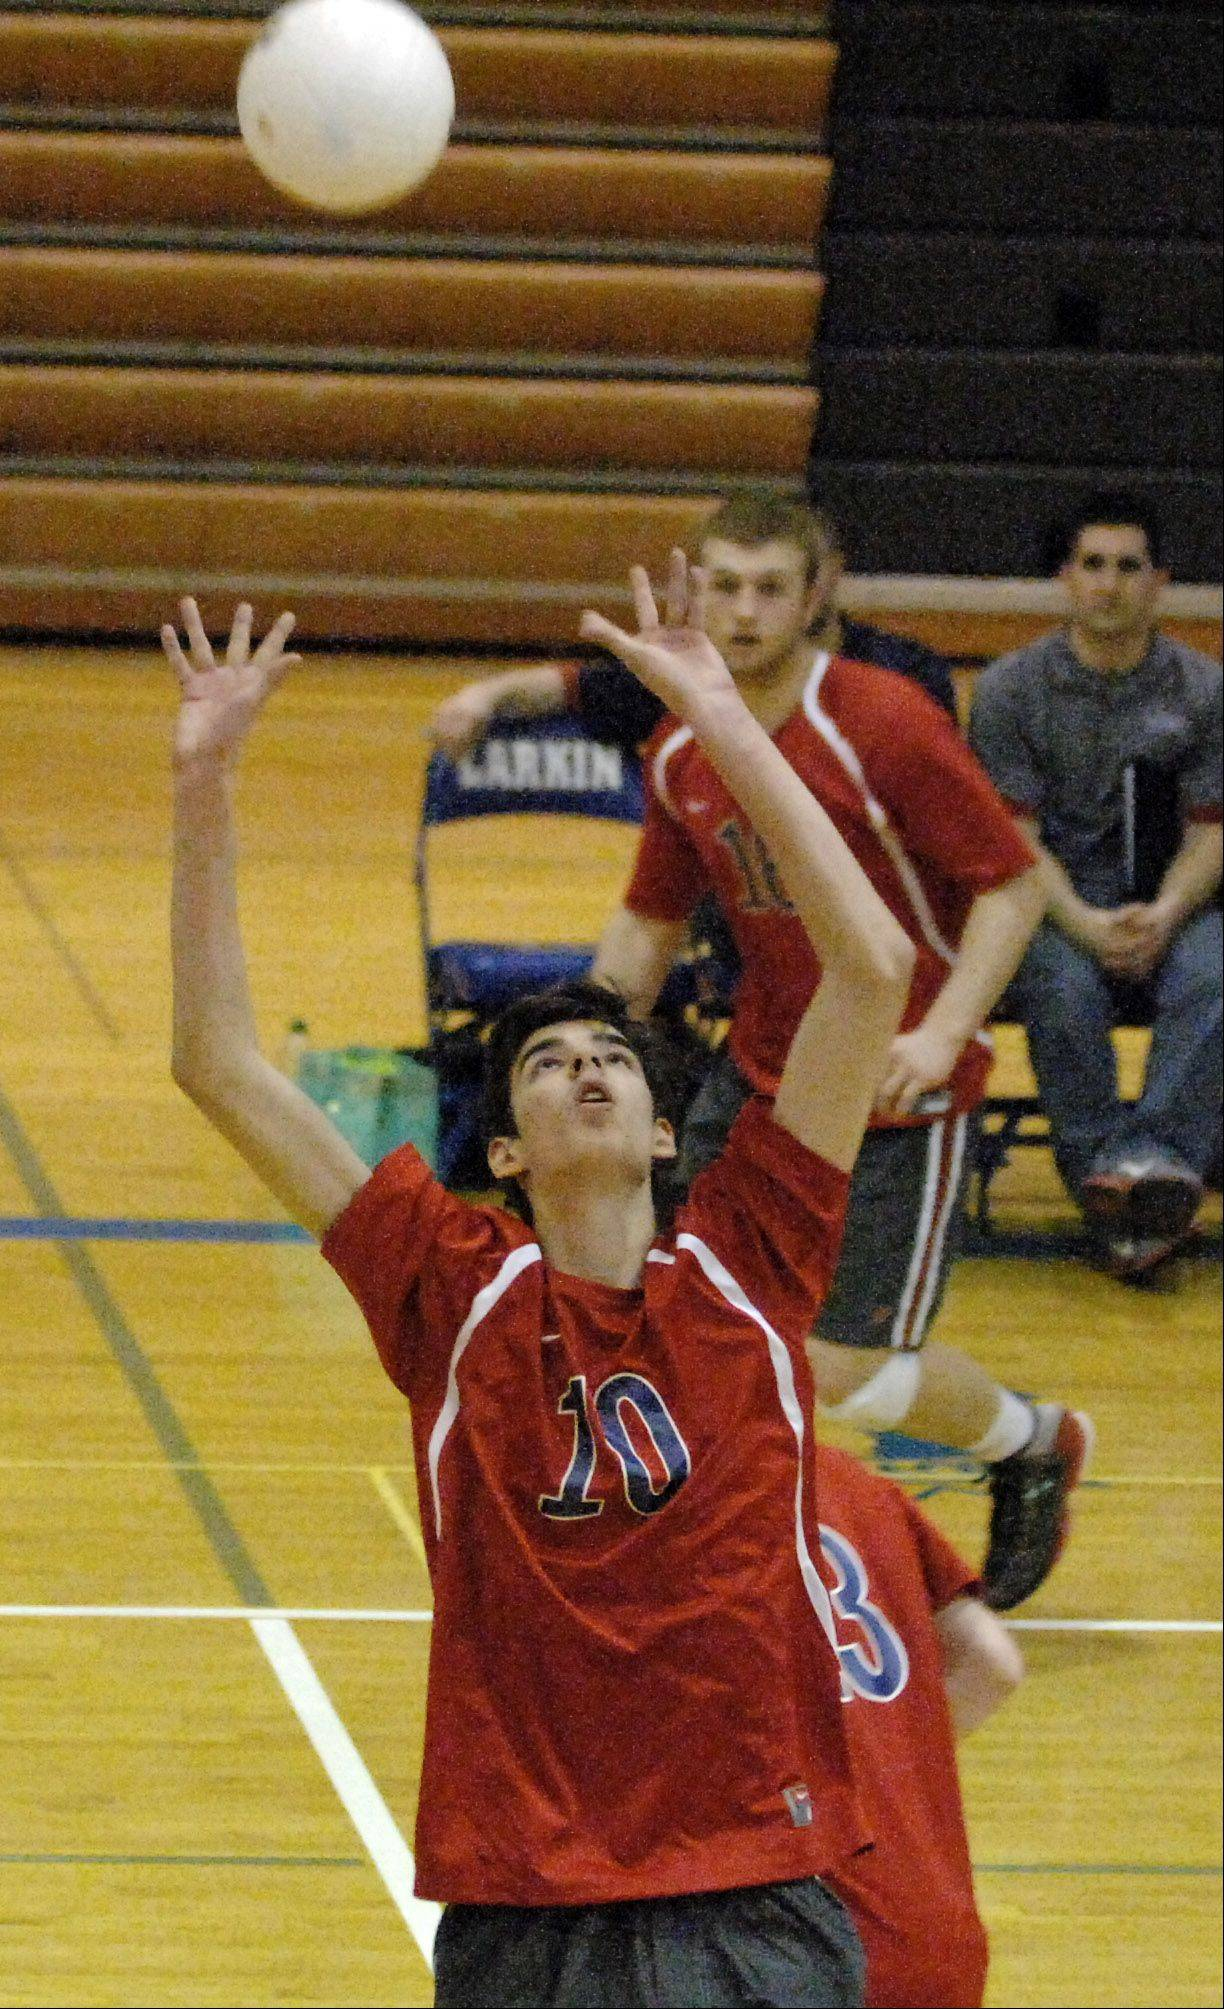 South Elgin's Chris Gibadlo sets up a teammate against Larkin during Thursday's game at Larkin in Elgin.